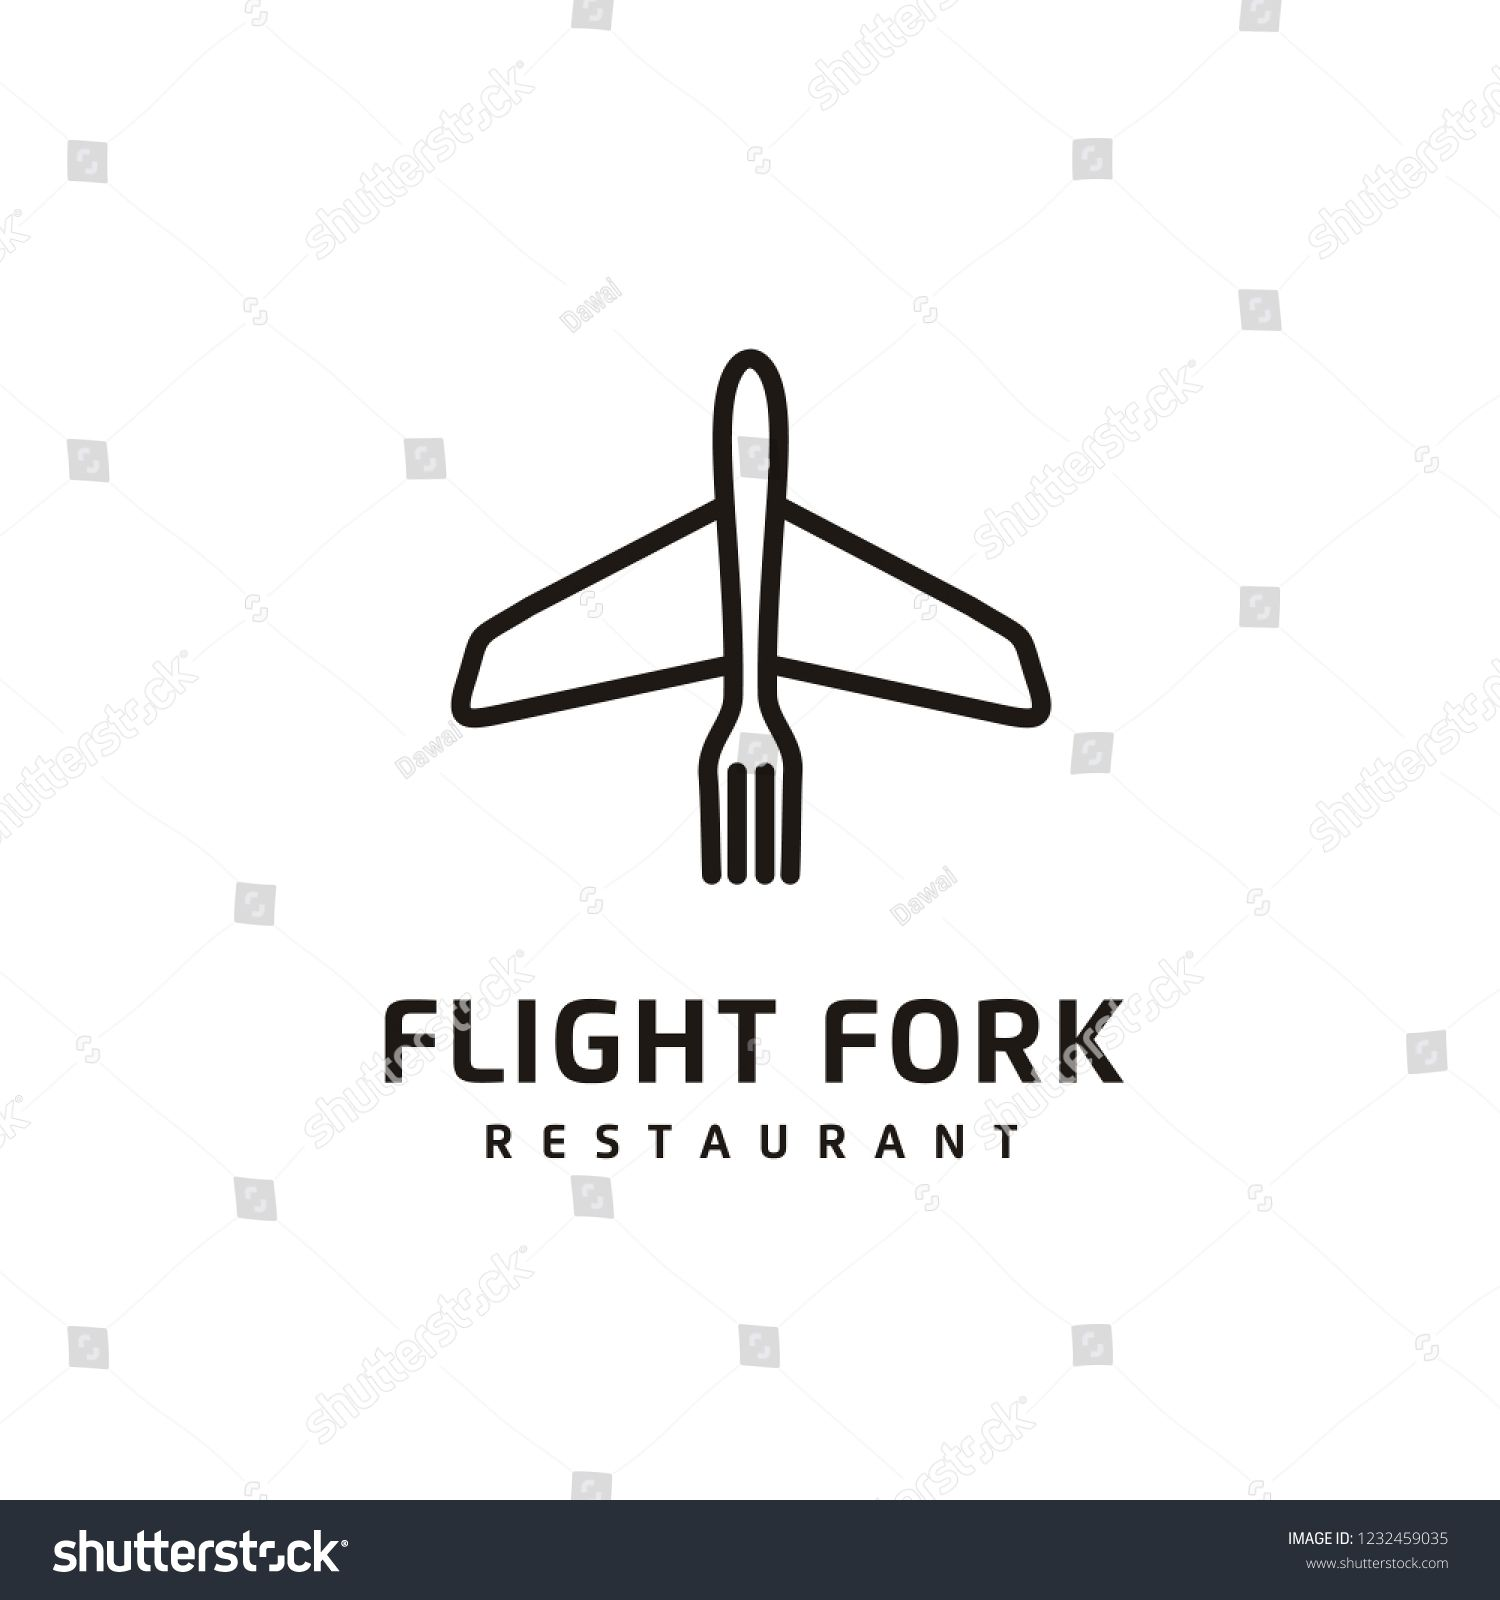 Minimalist Outline Food And Plane Logo Design Sponsored Affiliate Food Outline Minimalist Design Logo Design Outline Minimalist Design